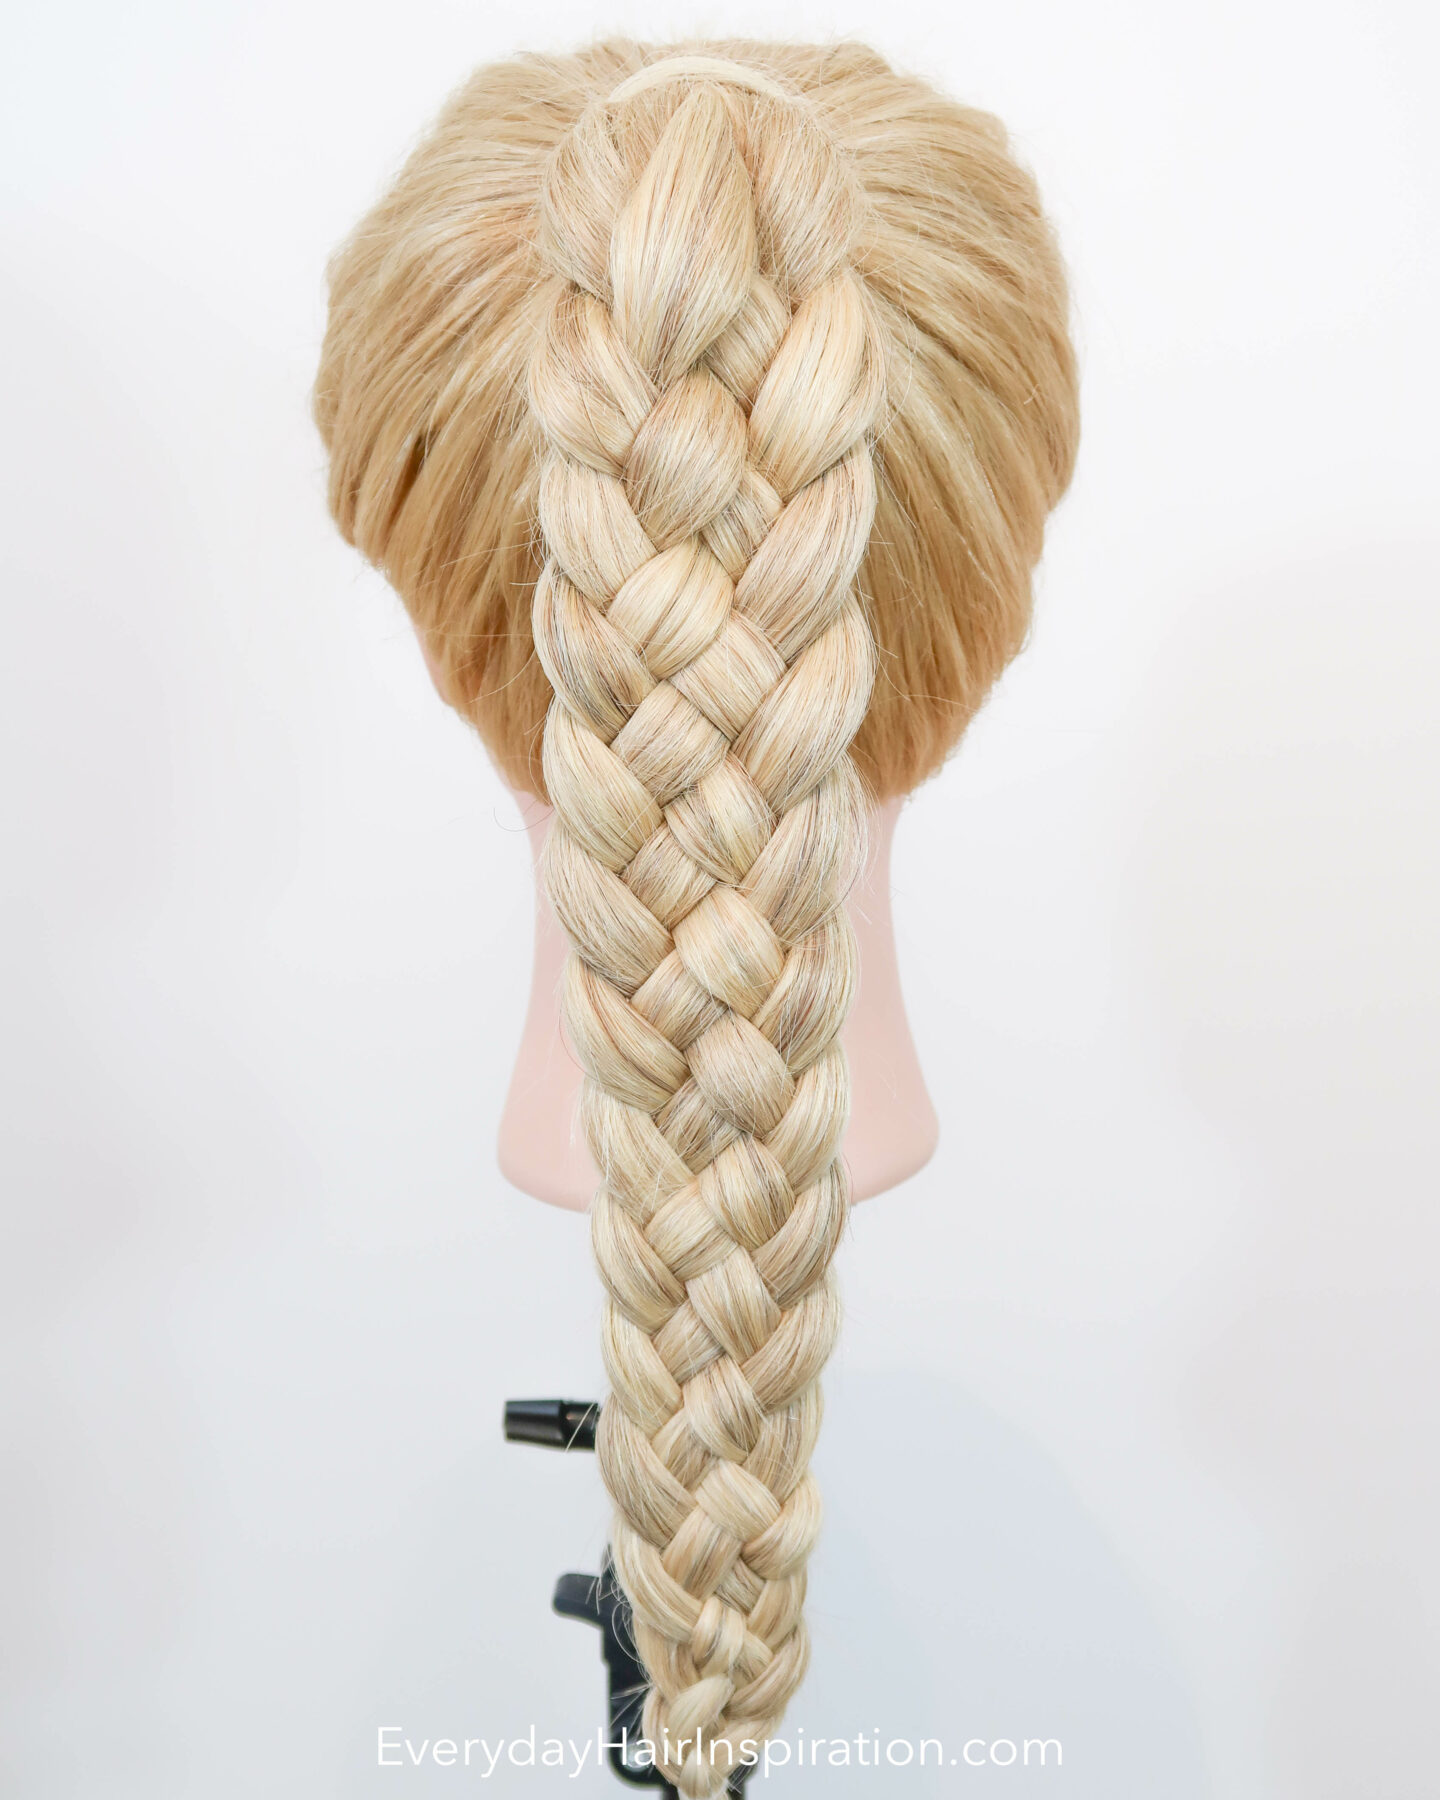 Blonde hairdresser doll seen from the back with a high ponytail with a 5 strand braid, braided in the hair.